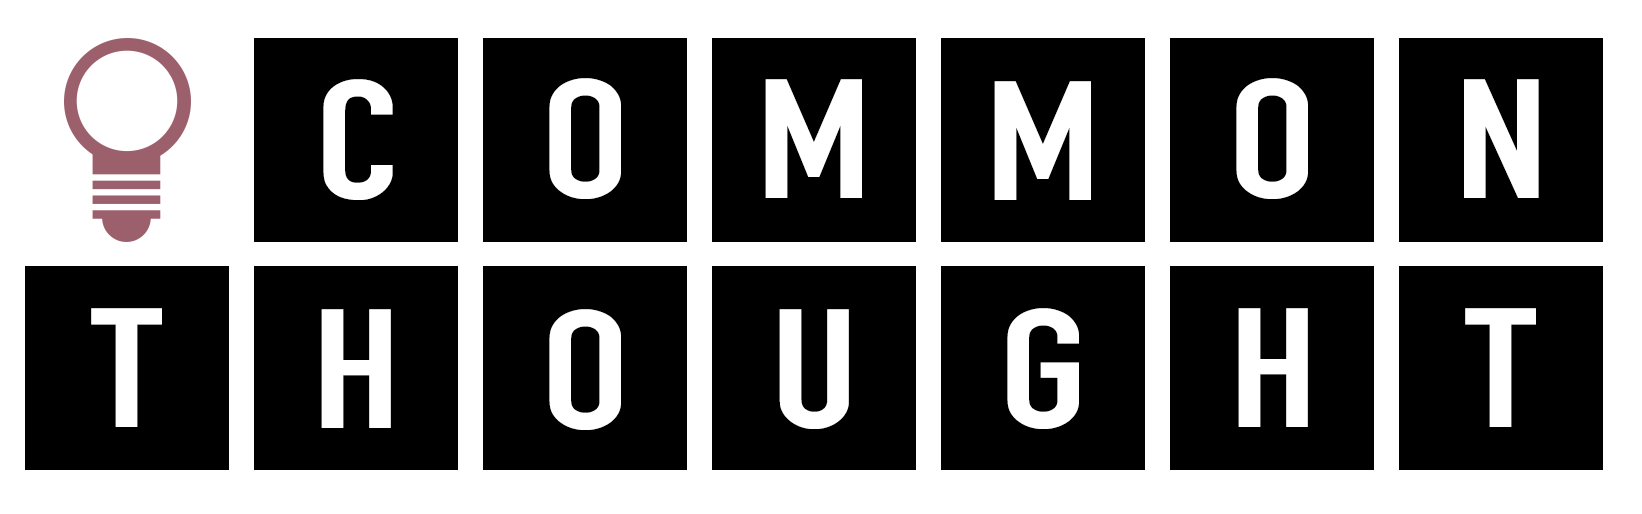 A logo of Commonthought - has a light bulb and then common thought spelled out in two lines.